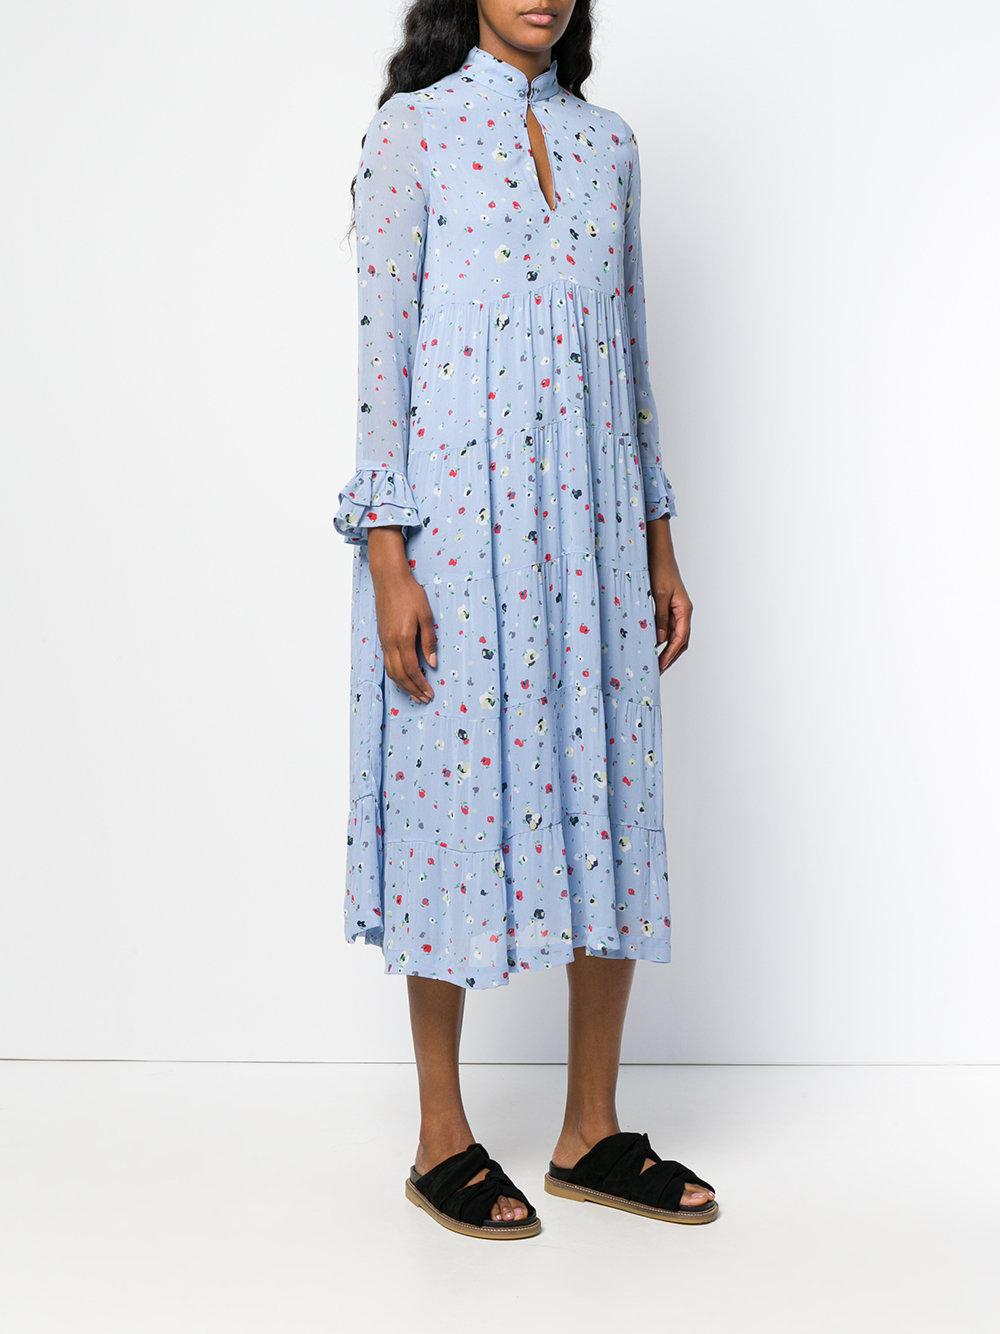 f6315cd2 Gallery. Previously sold at: Farfetch · Women's Midi Dresses Women's Floral  Dresses